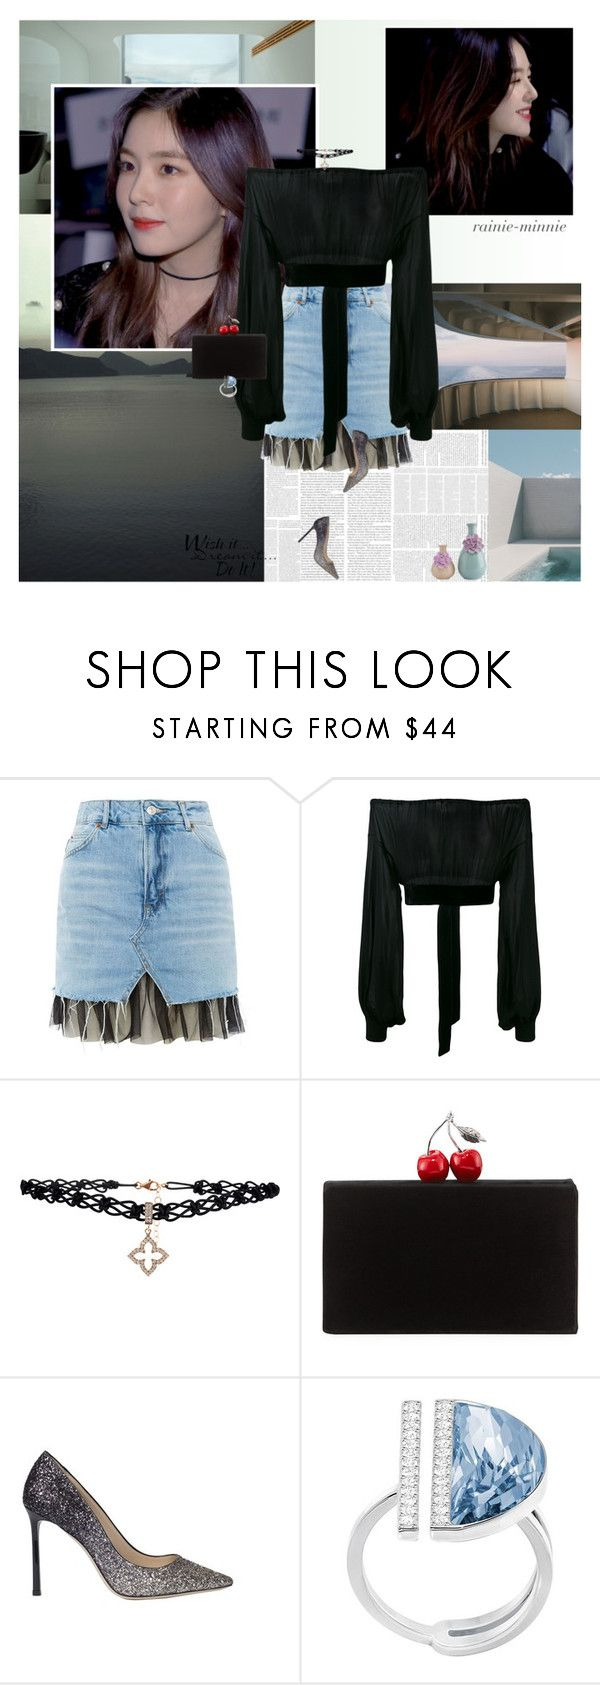 """""""Stay Beautiful"""" by rainie-minnie on Polyvore featuring Topshop, Yves Saint Laurent, Edie Parker, Jimmy Choo, Swarovski and WALL"""